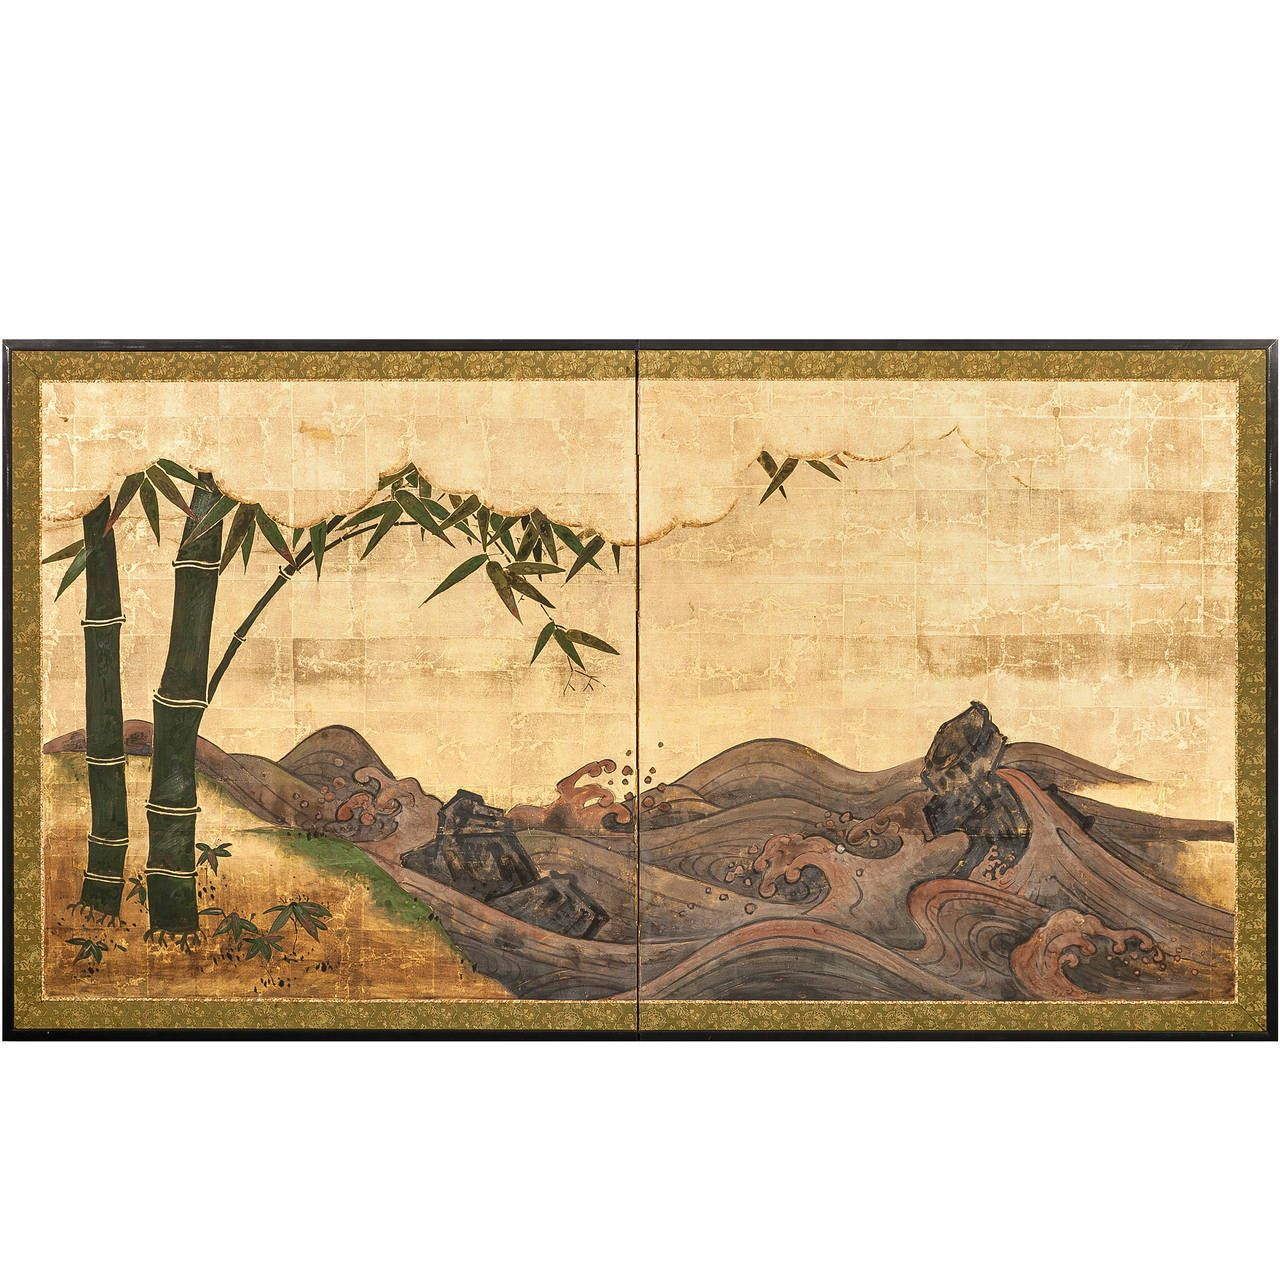 Antique japanese screens for sale - View This Item And Discover Similar Paintings And Screens For Sale At Japanese Screen Painting Of Seascape And Bamboo Colored Pigments On Gold Leaf